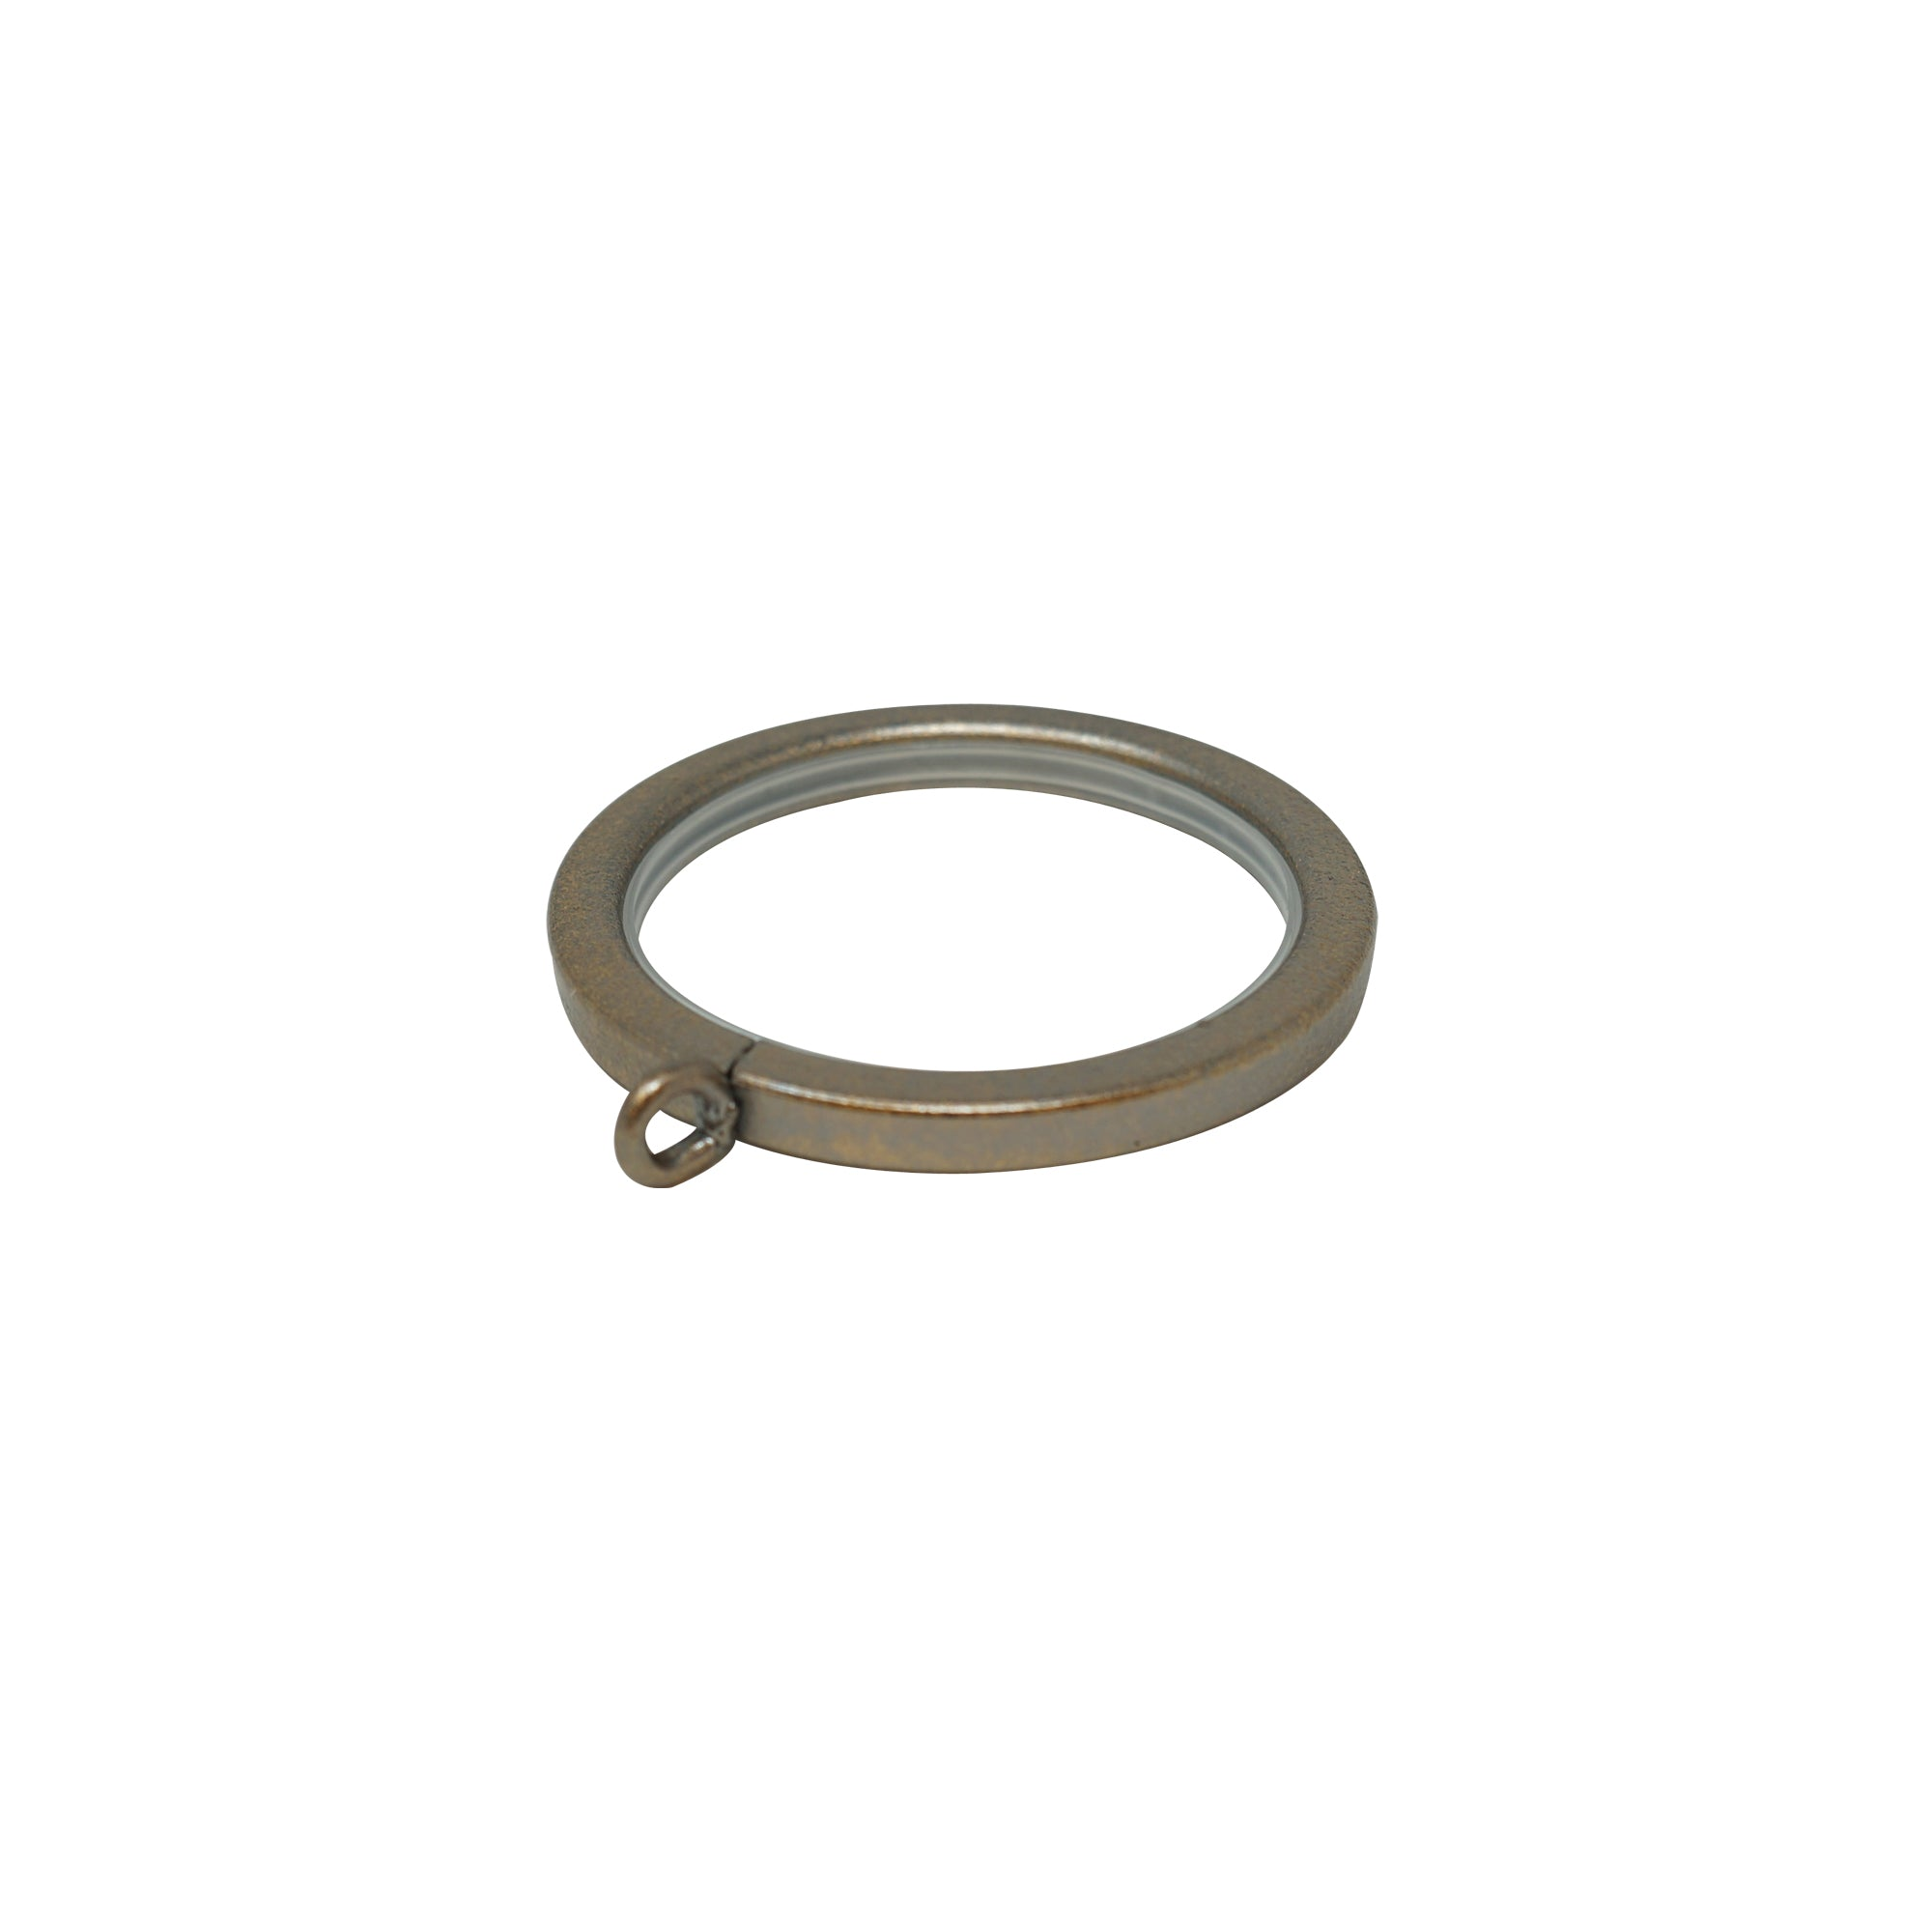 Metal Ring (10PK) - Rose Gold Finish